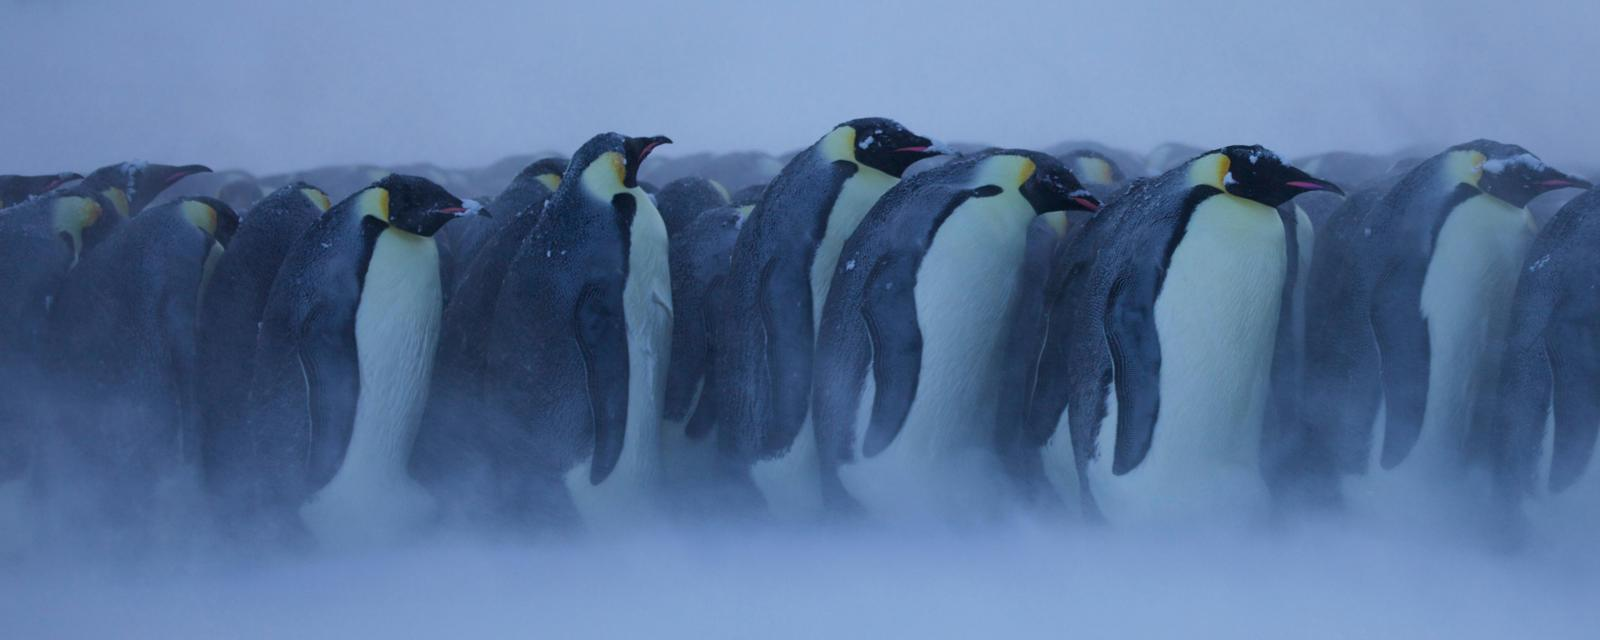 There is good reason penguins huddle to keep warm (Credit: NPL/Alamy)